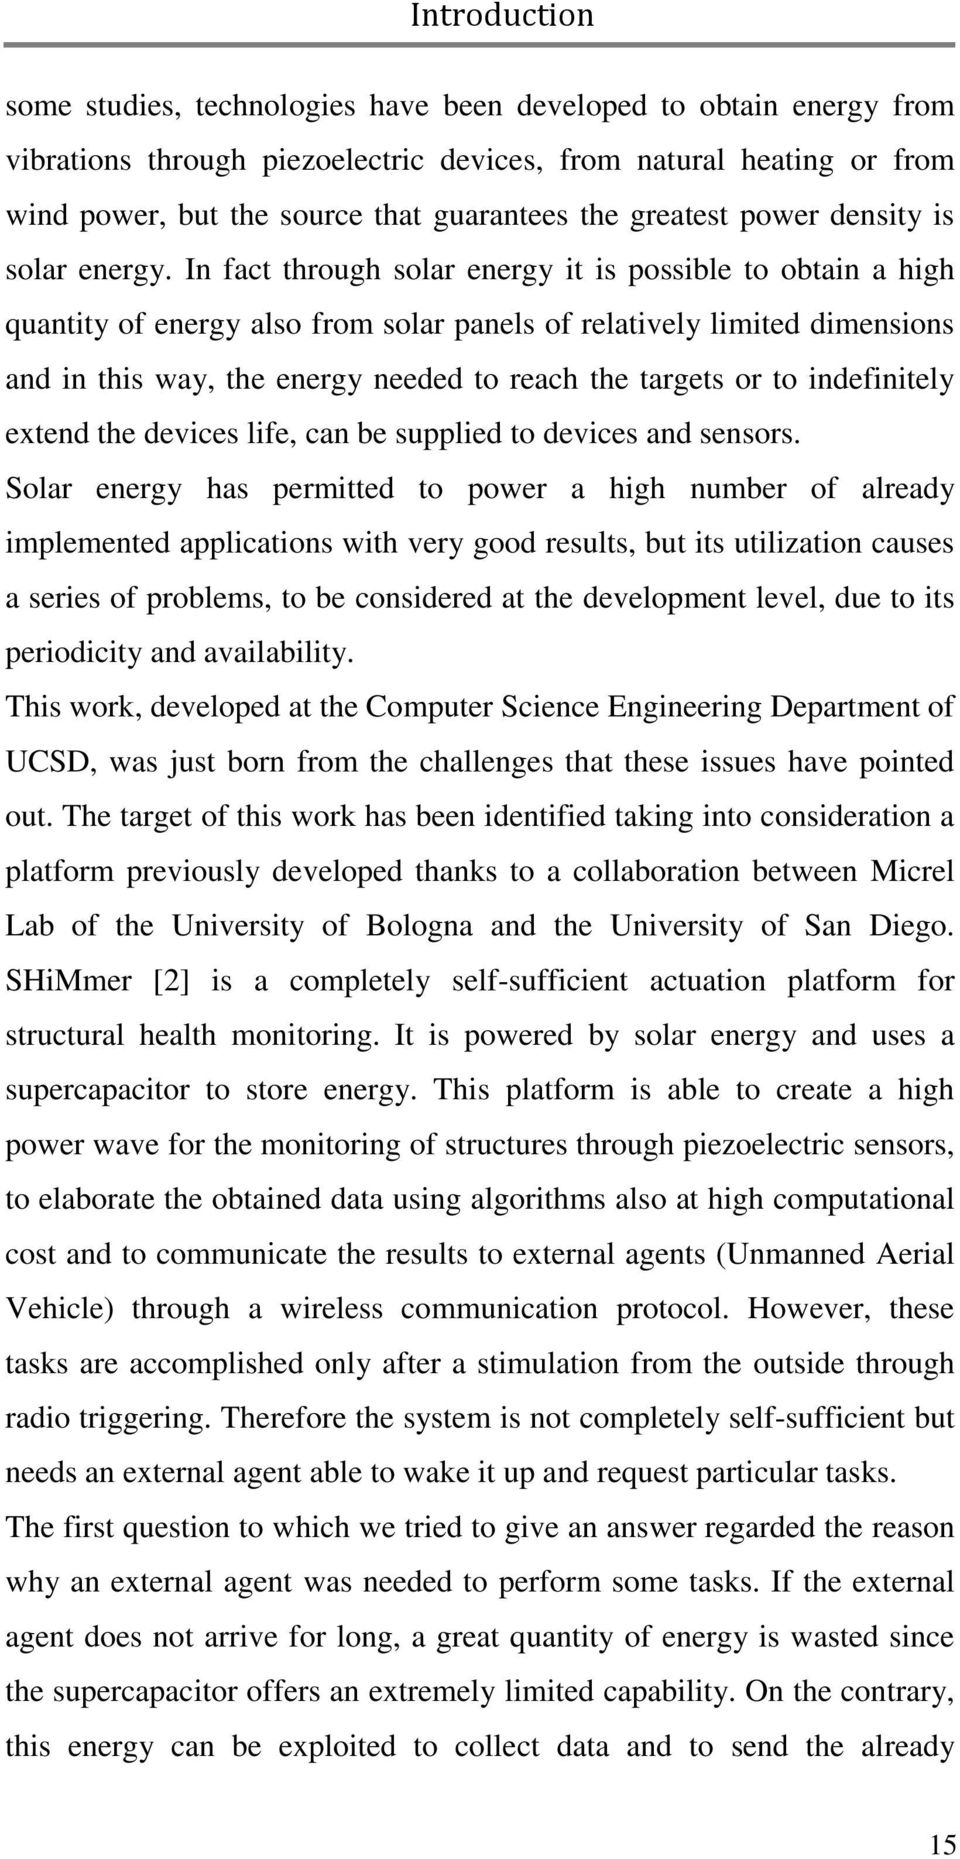 In fact through solar energy it is possible to obtain a high quantity of energy also from solar panels of relatively limited dimensions and in this way, the energy needed to reach the targets or to